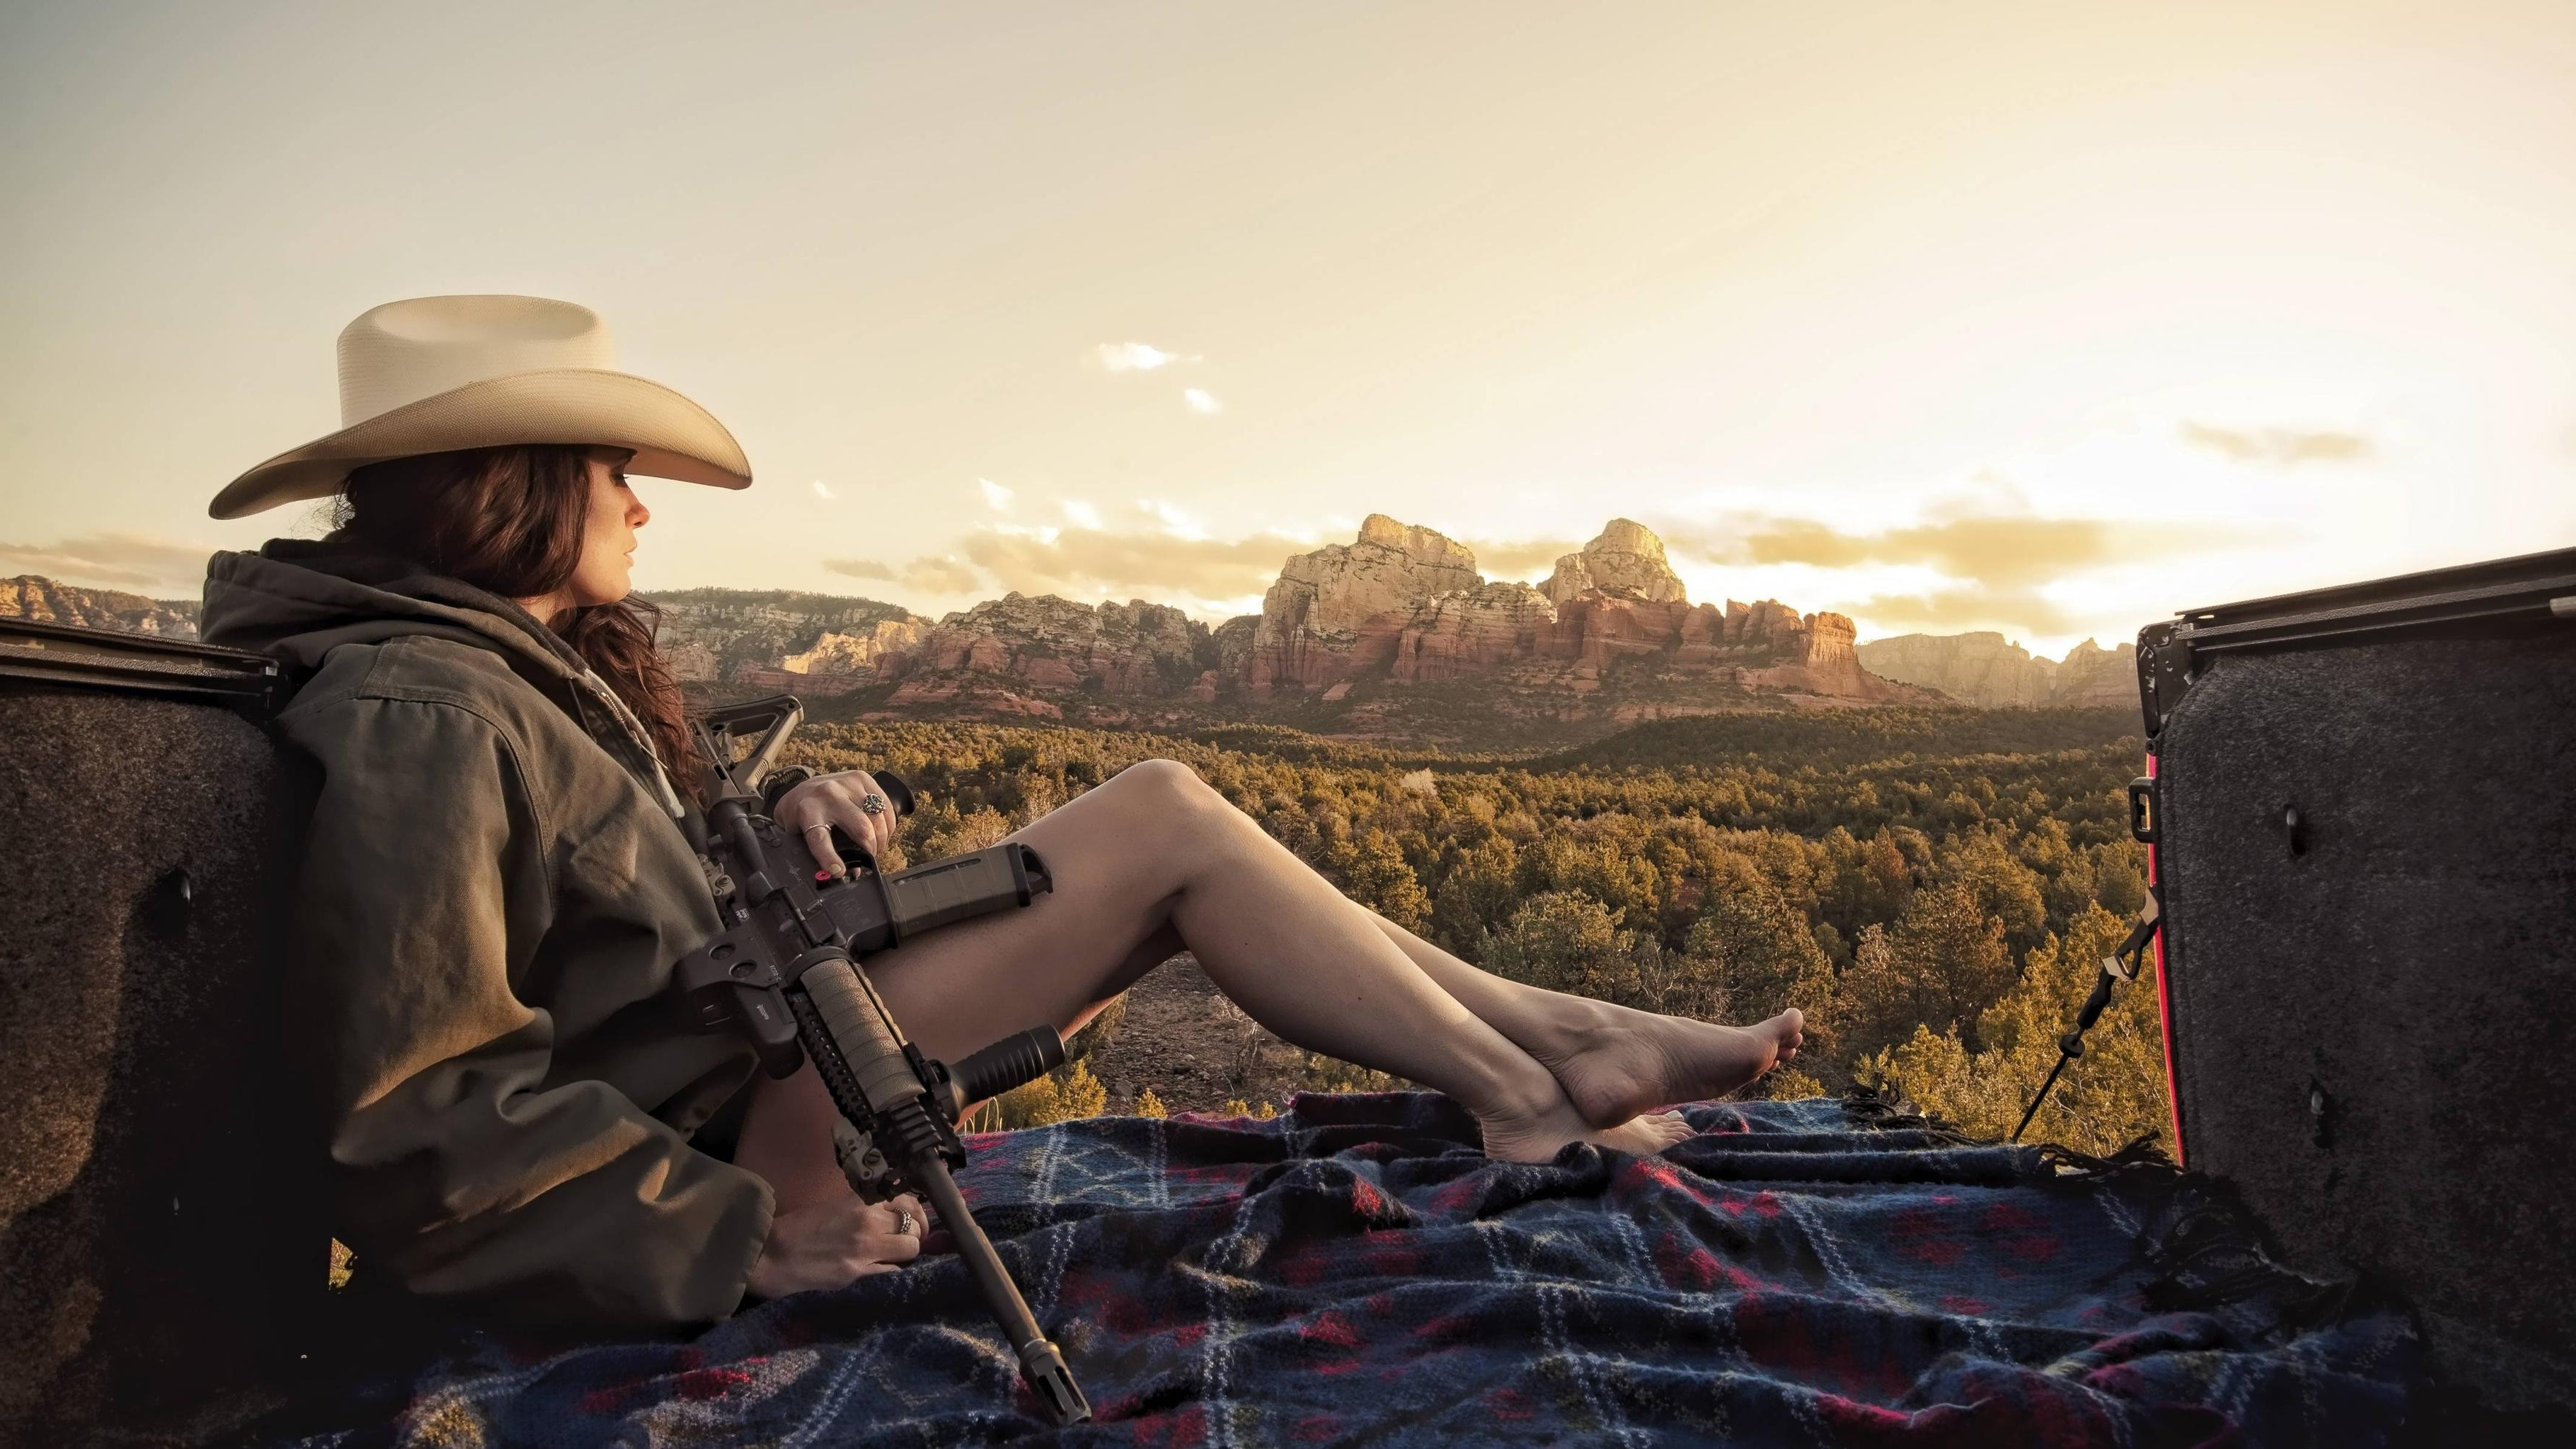 Res: 3532x1987, women barefoot legs assault rifle cowboy hats wallpaper and background